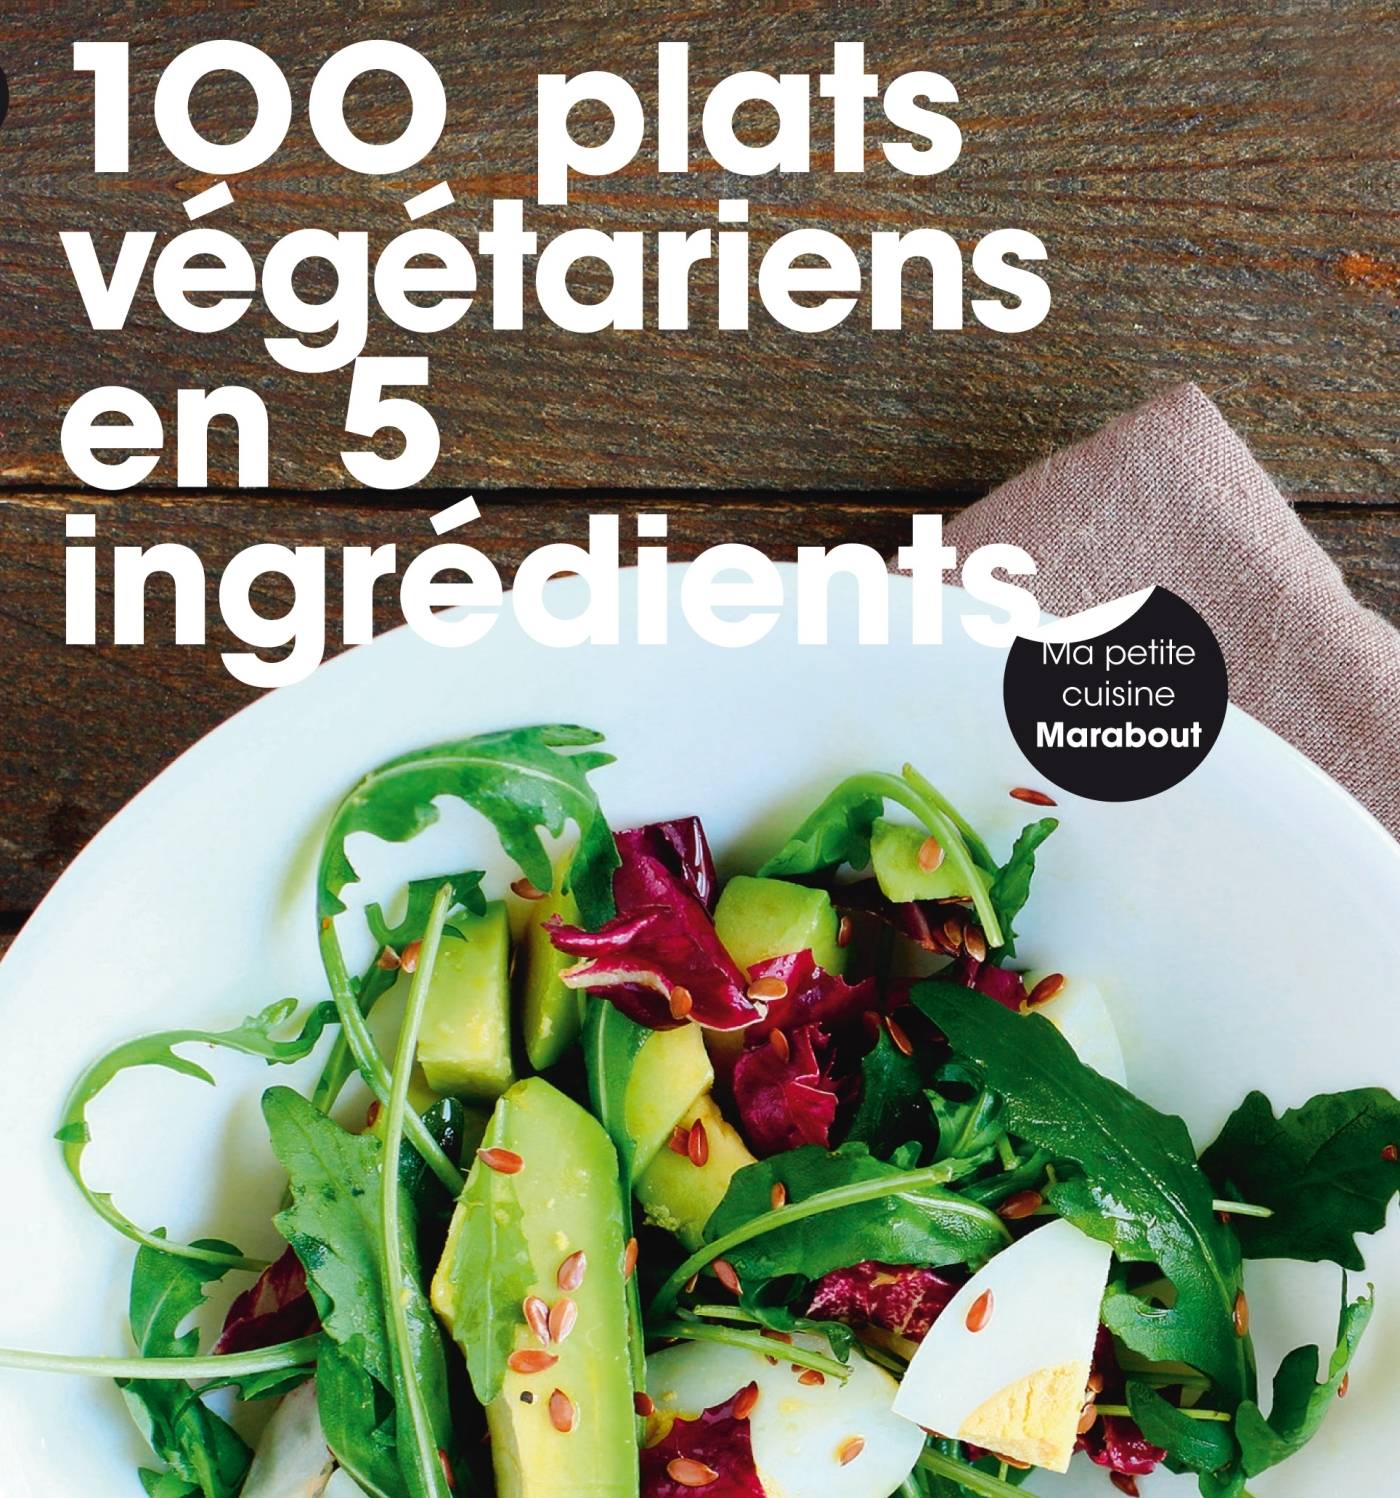 100 PLATS VEGETARIENS EN 5 INGREDIENTS